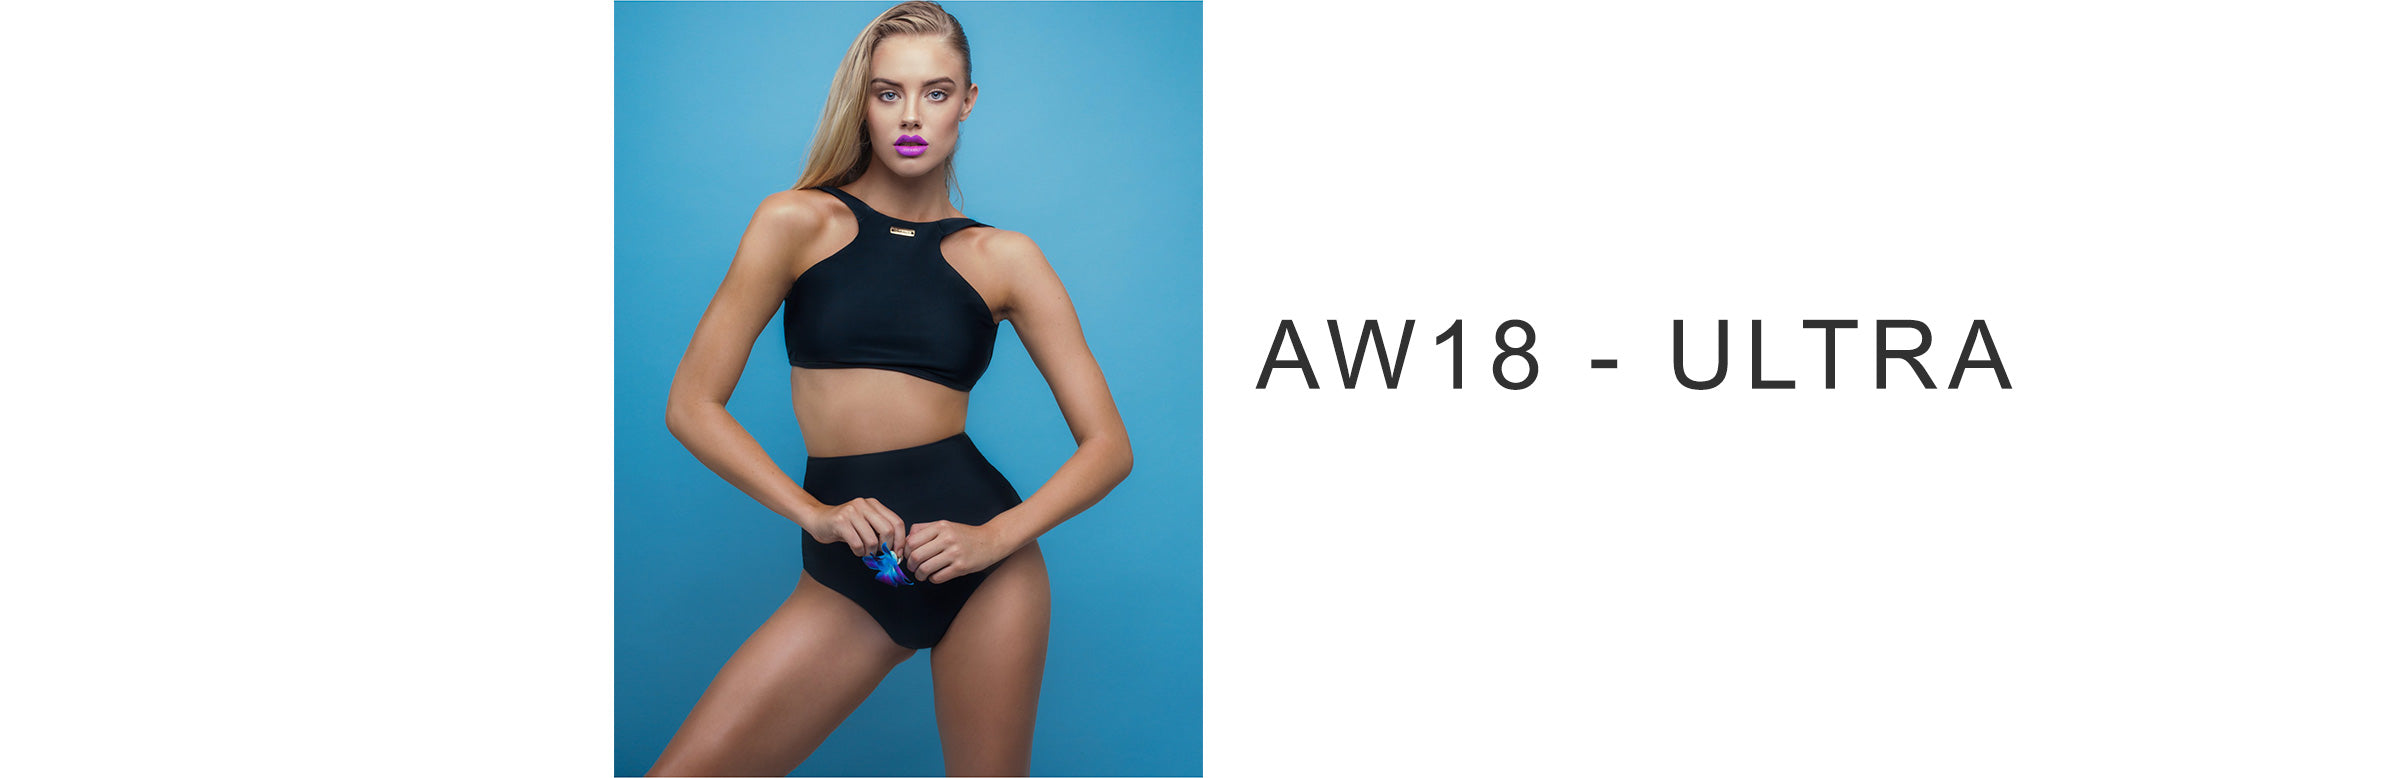 Zingiber Collection AW18 - ULTRA - Australian Swimwear #australianswimwear #bathers #swimsuit